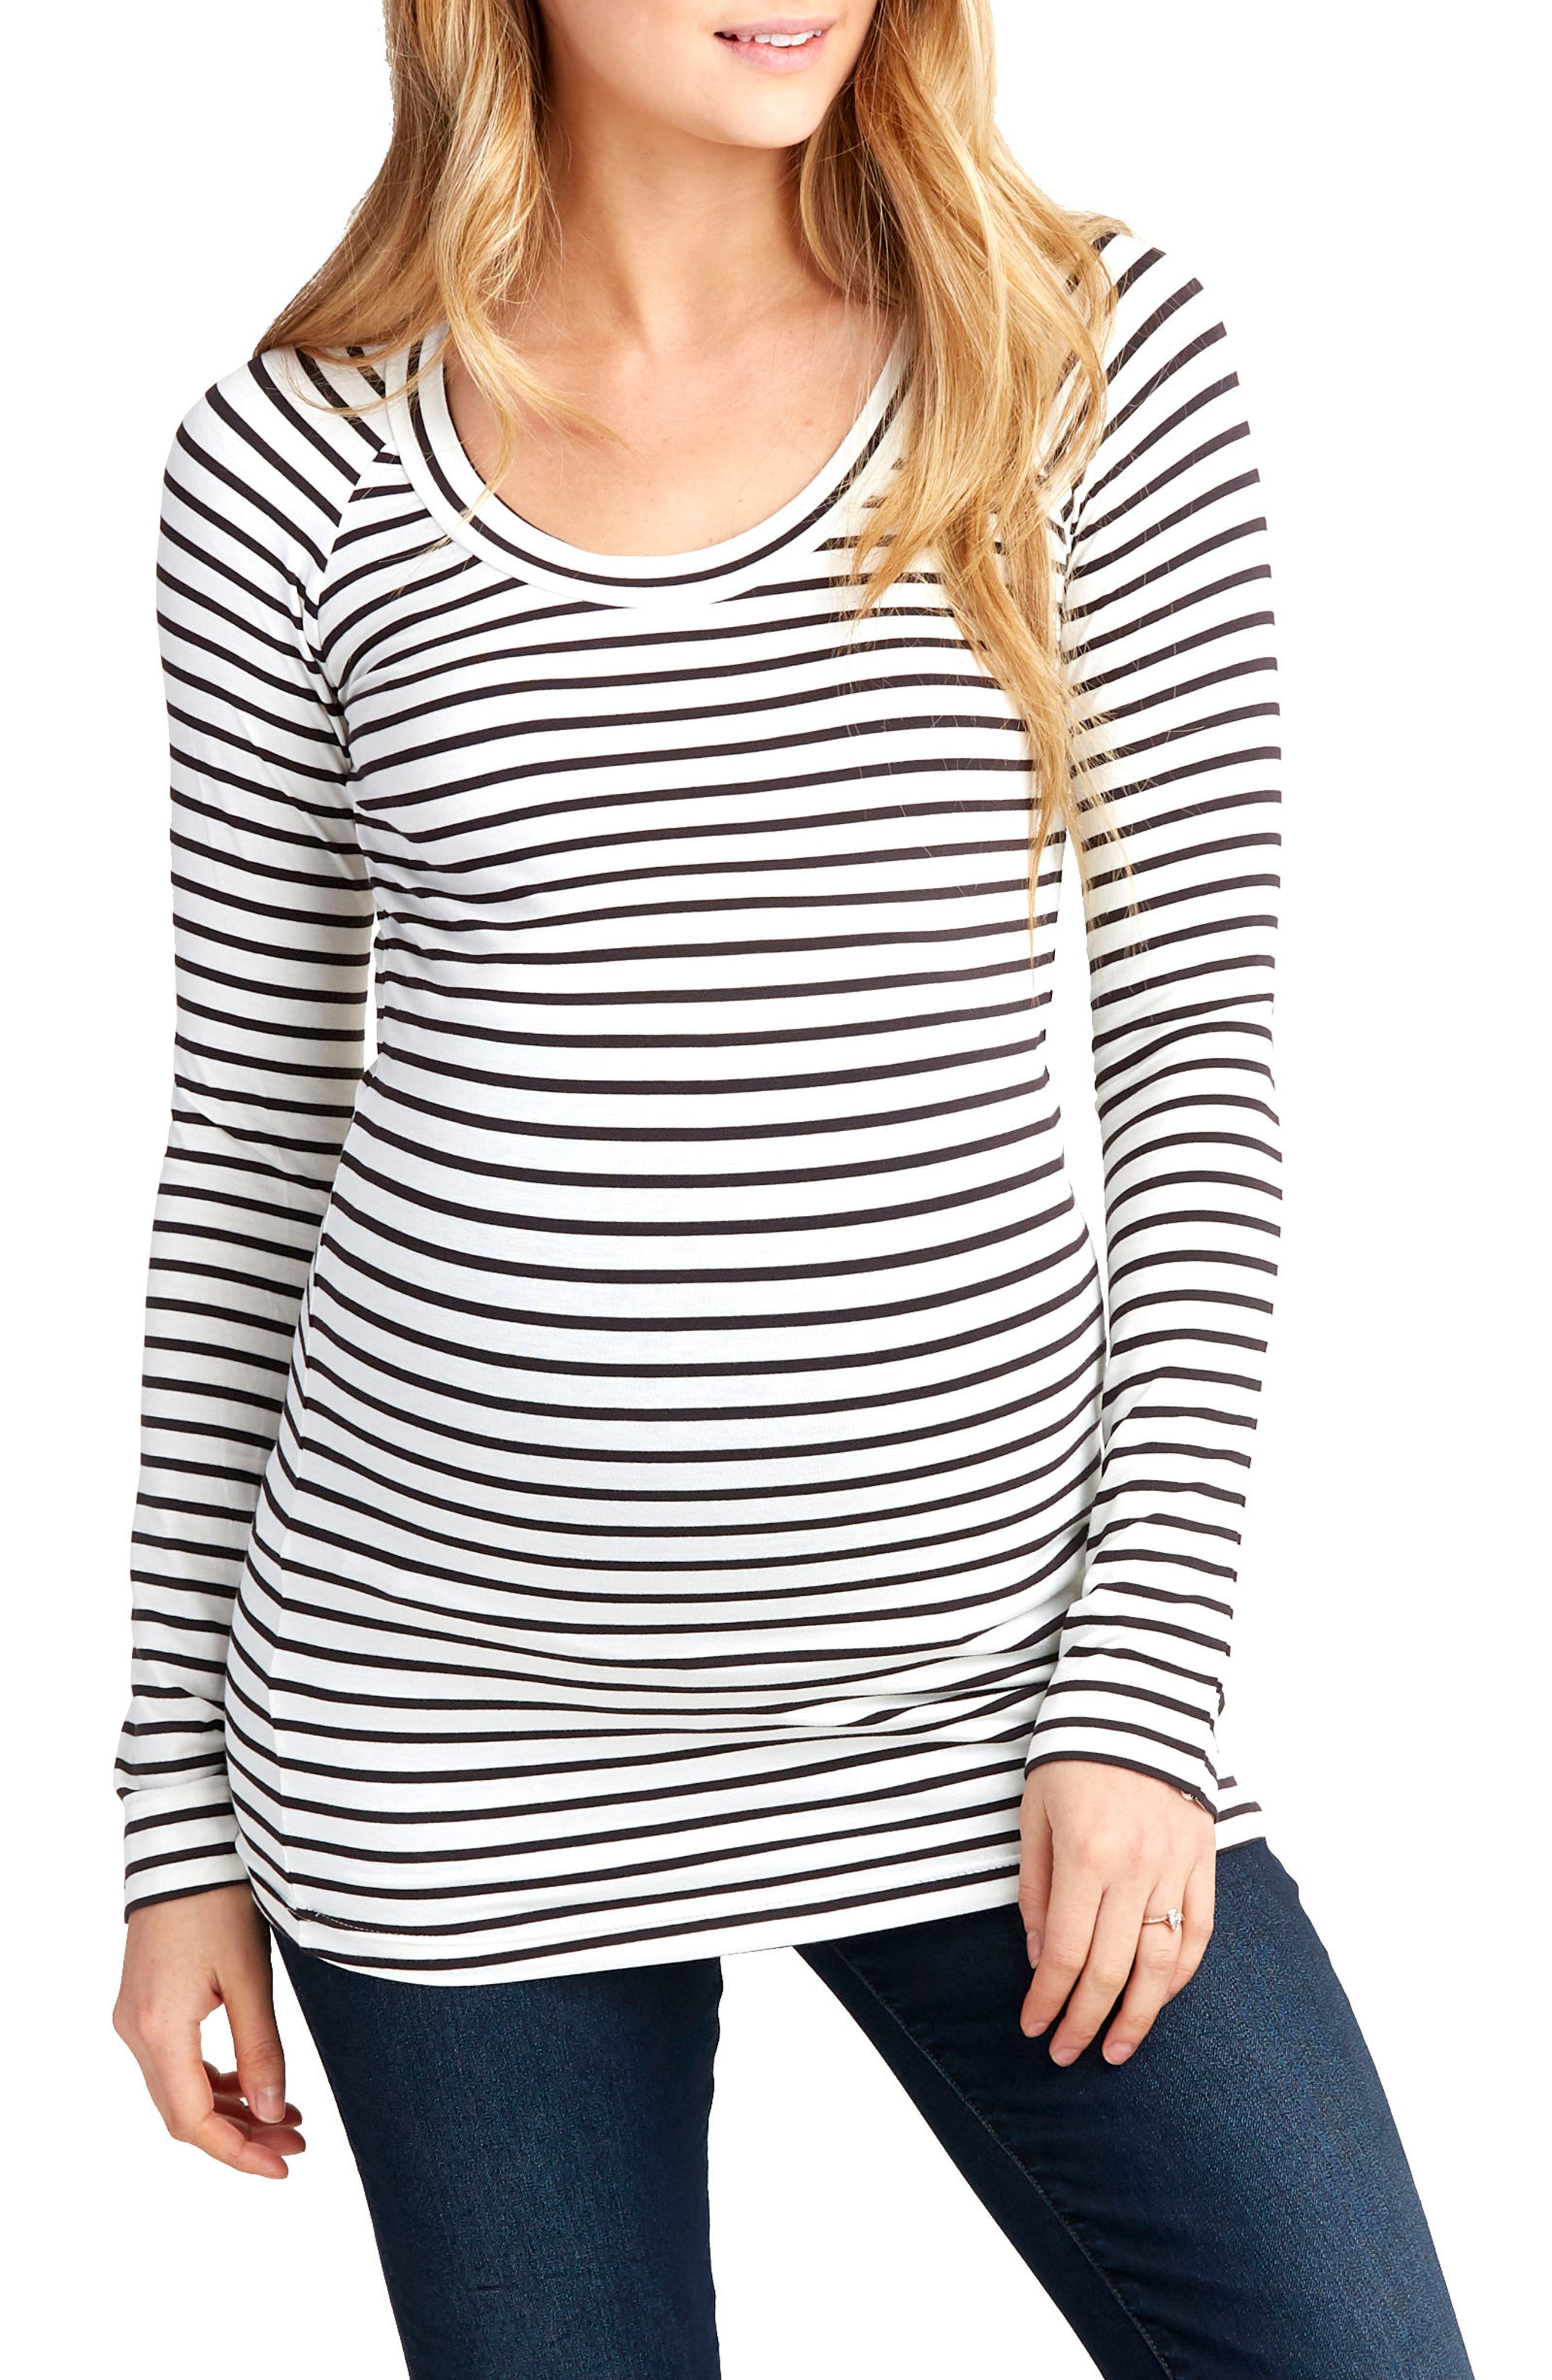 Phoebe Maternity Top,                         Main,                         color, BLACK AND WHITE STRIPE